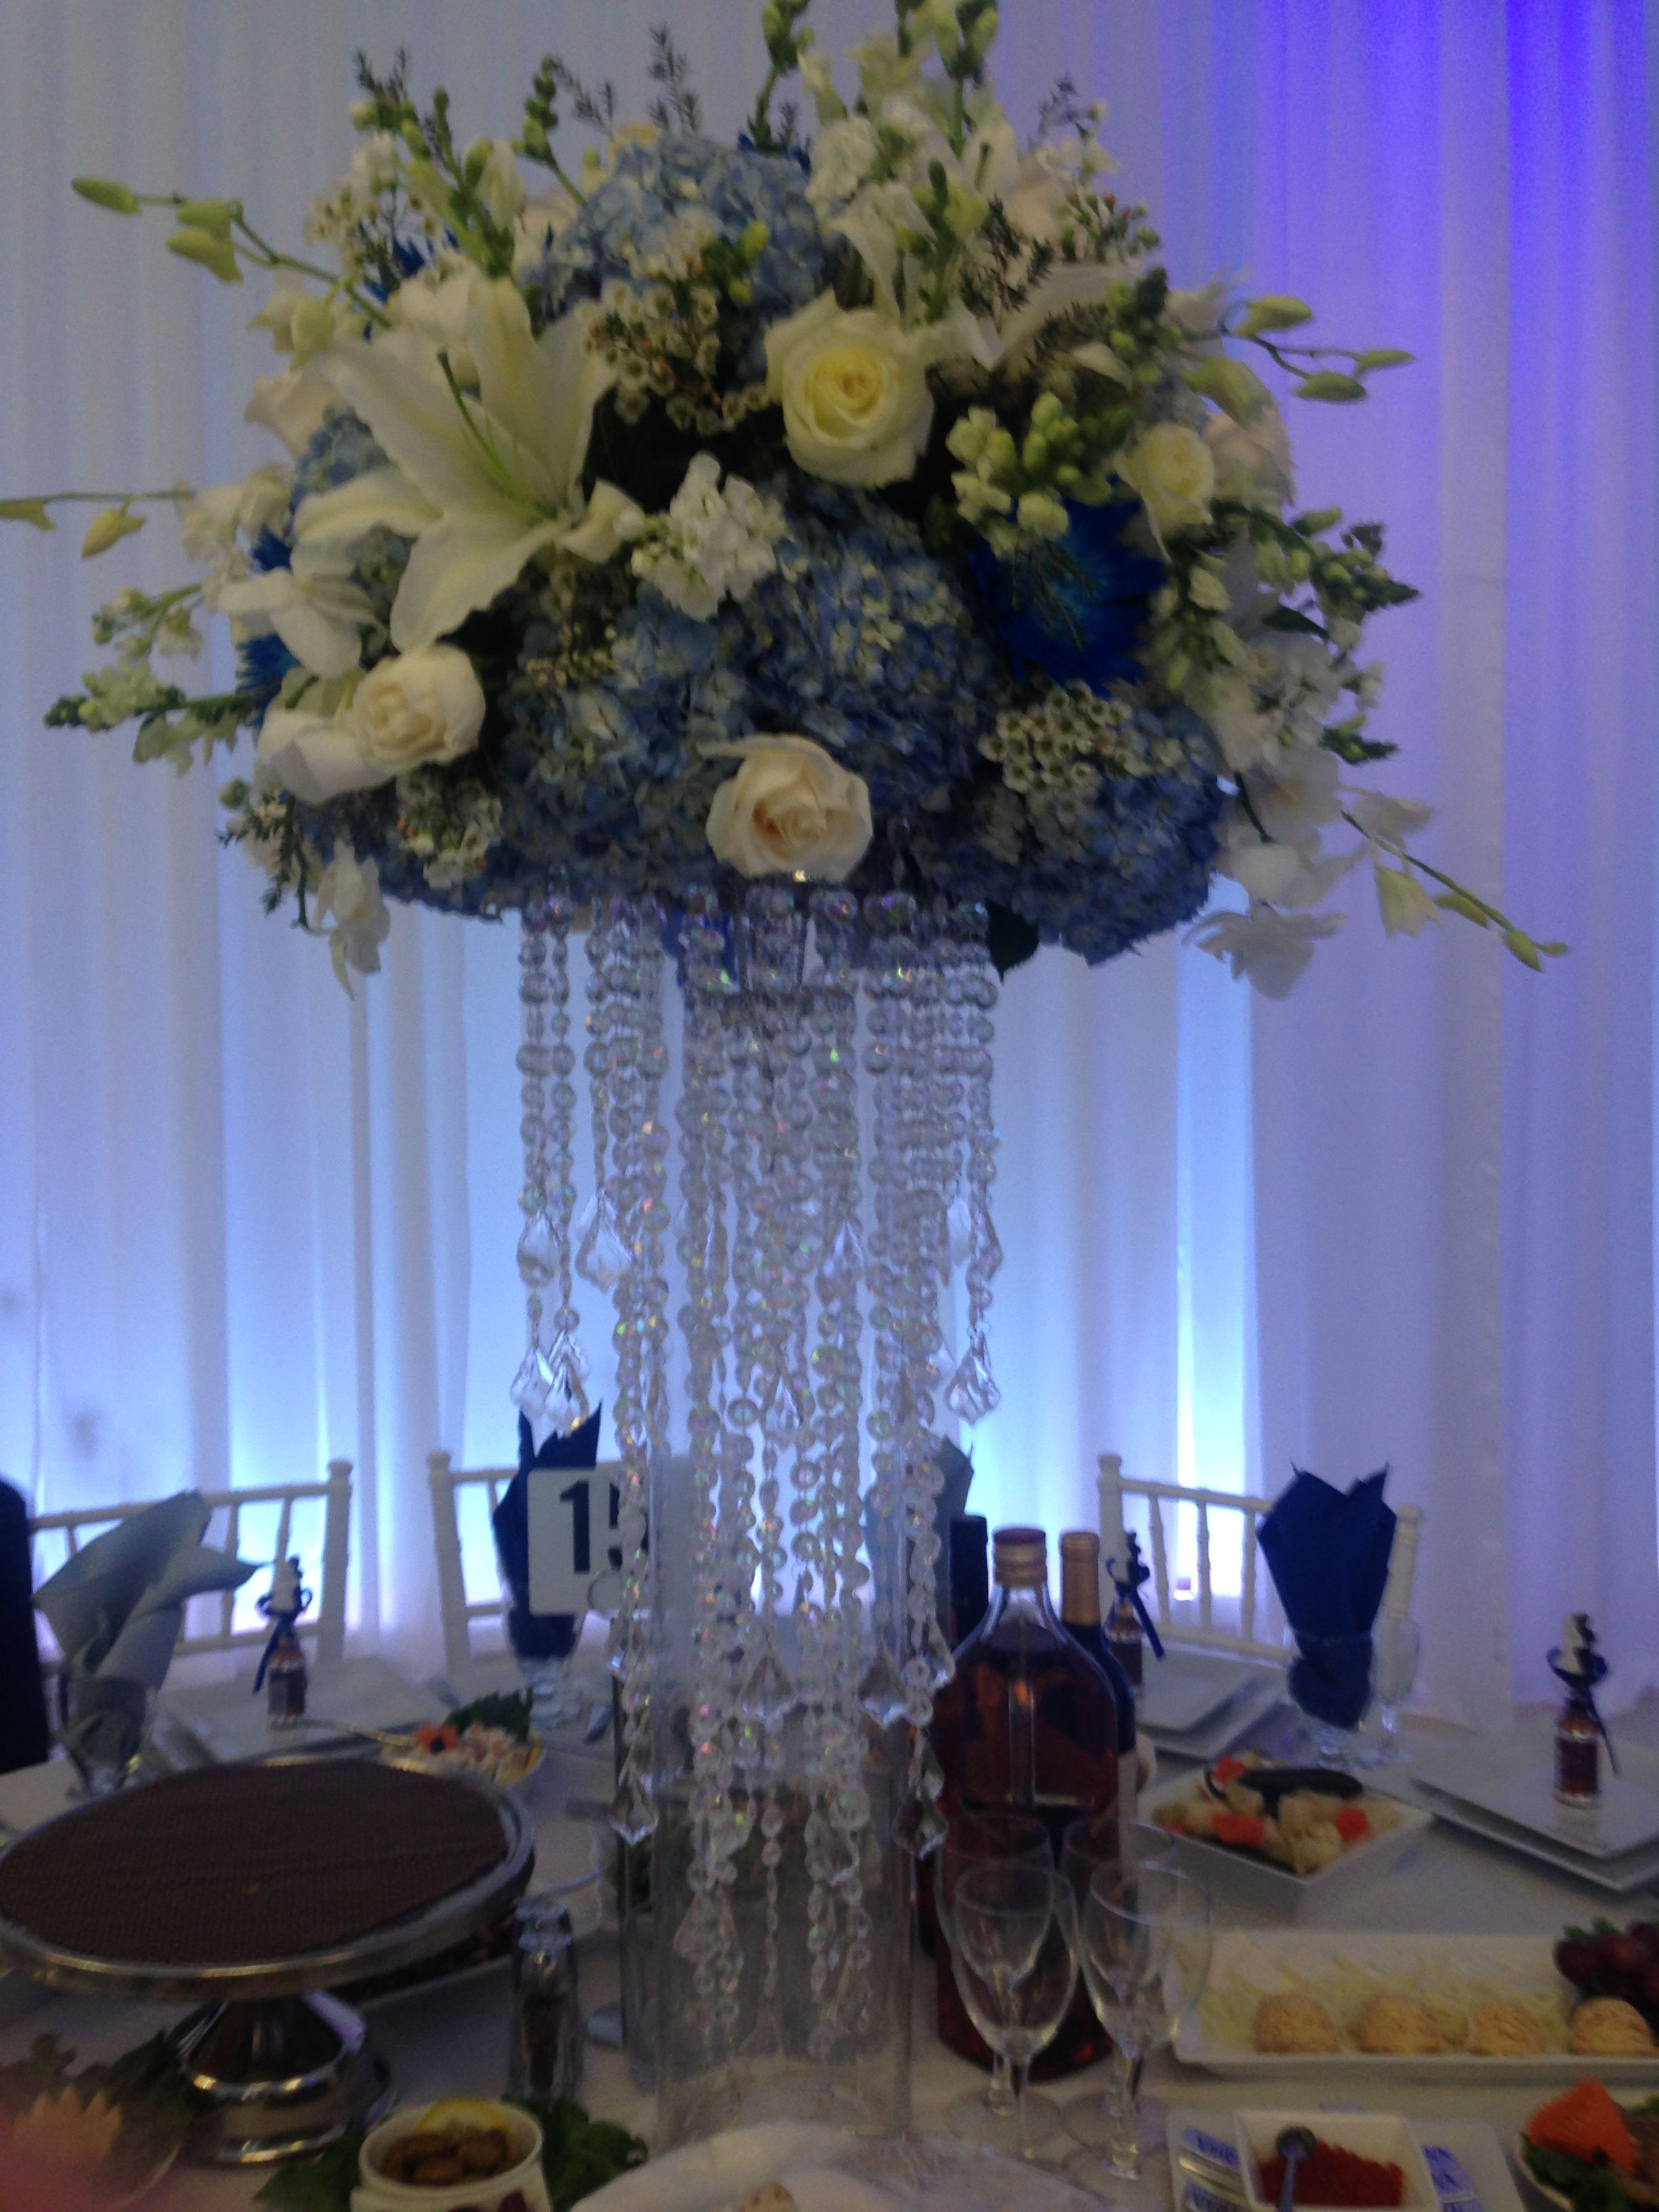 went to a wedding and the center pieces were gorgeous